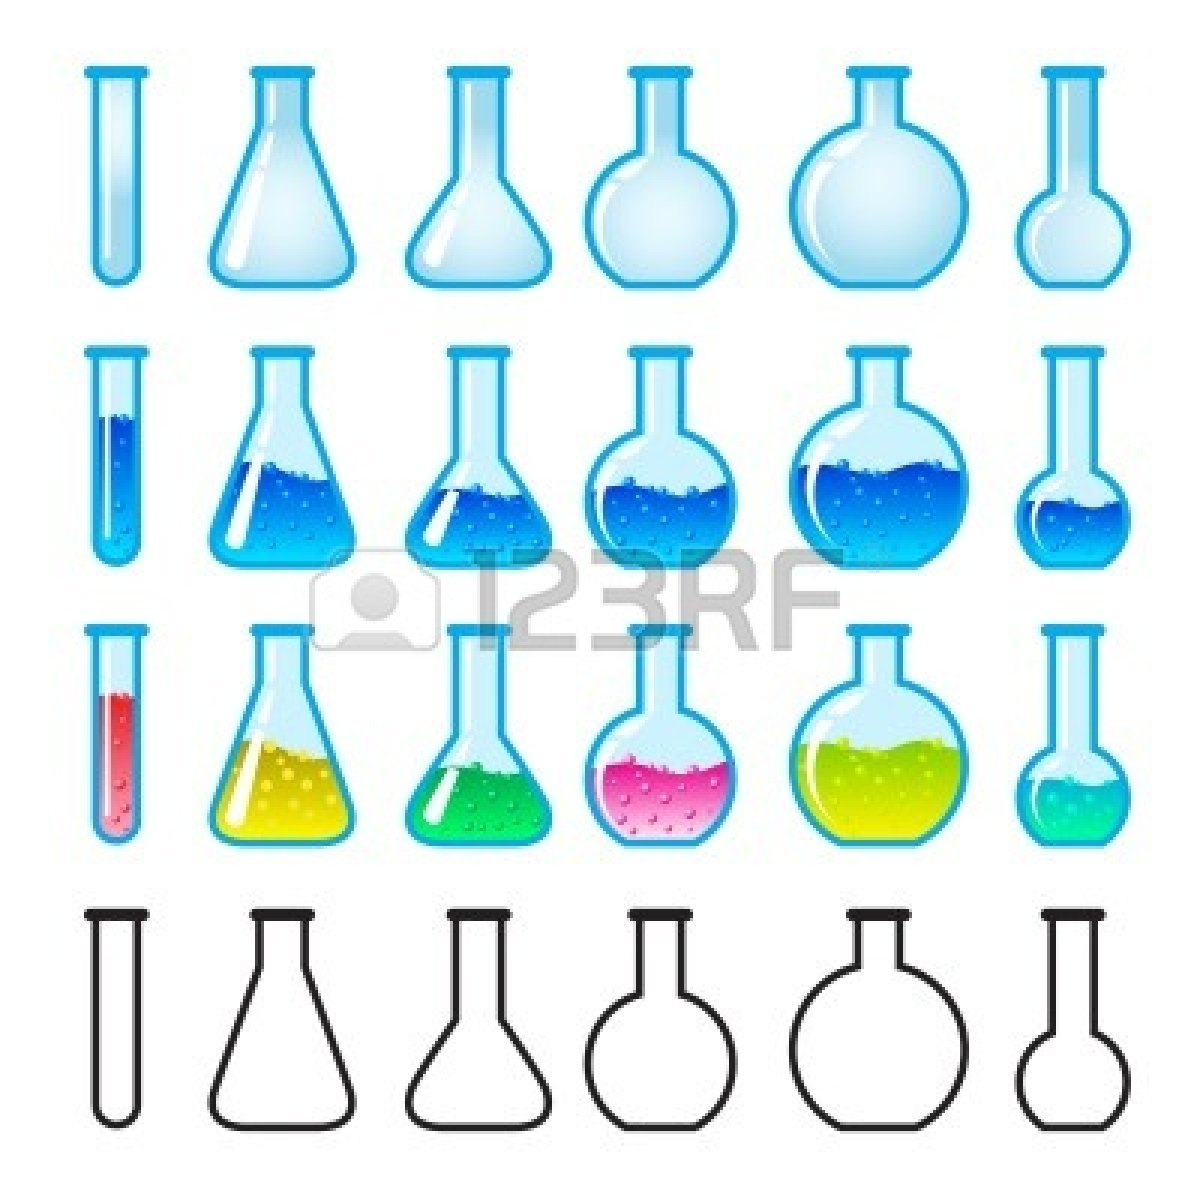 hight resolution of 1200x1200 science clipart safety equipment